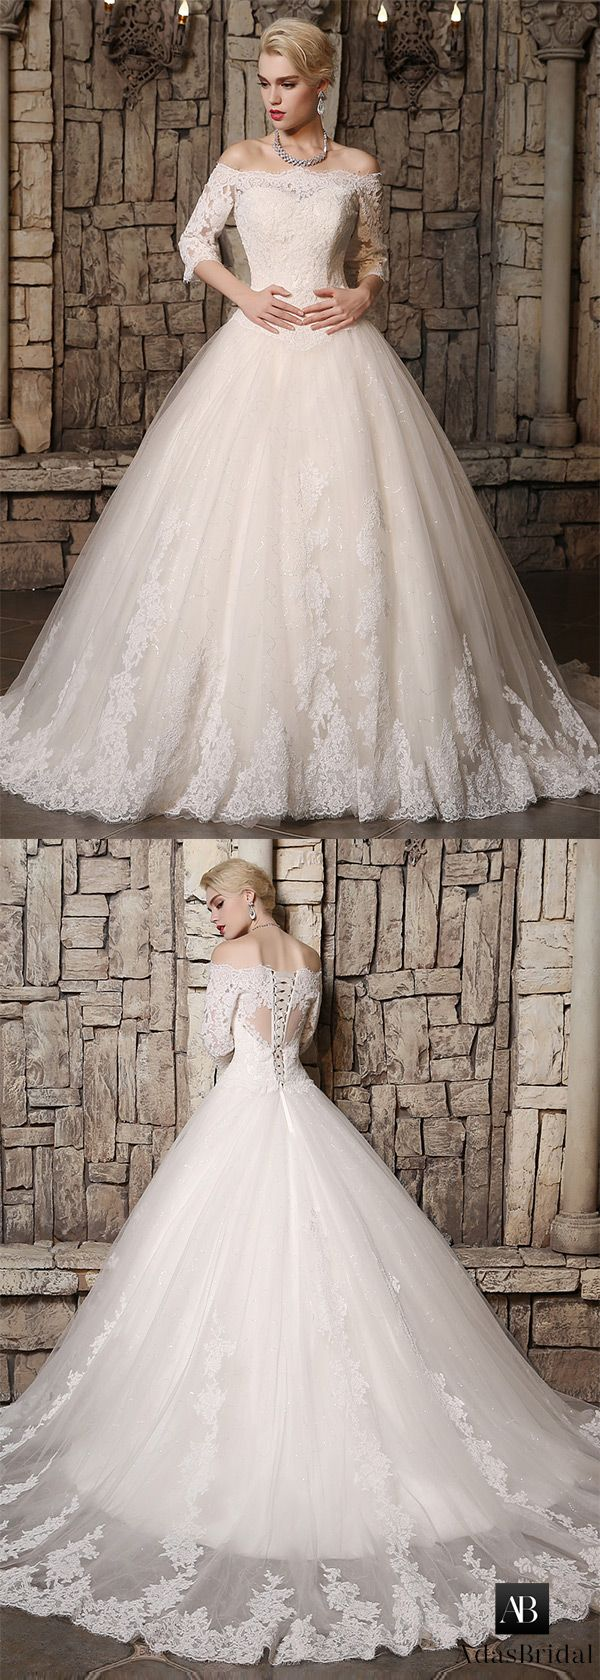 Fabulous tulle off-the-shoulder neckline ball gown wedding dresses with lace appliques. 100% real model photo. (WWD27916) - Adasbridal.com